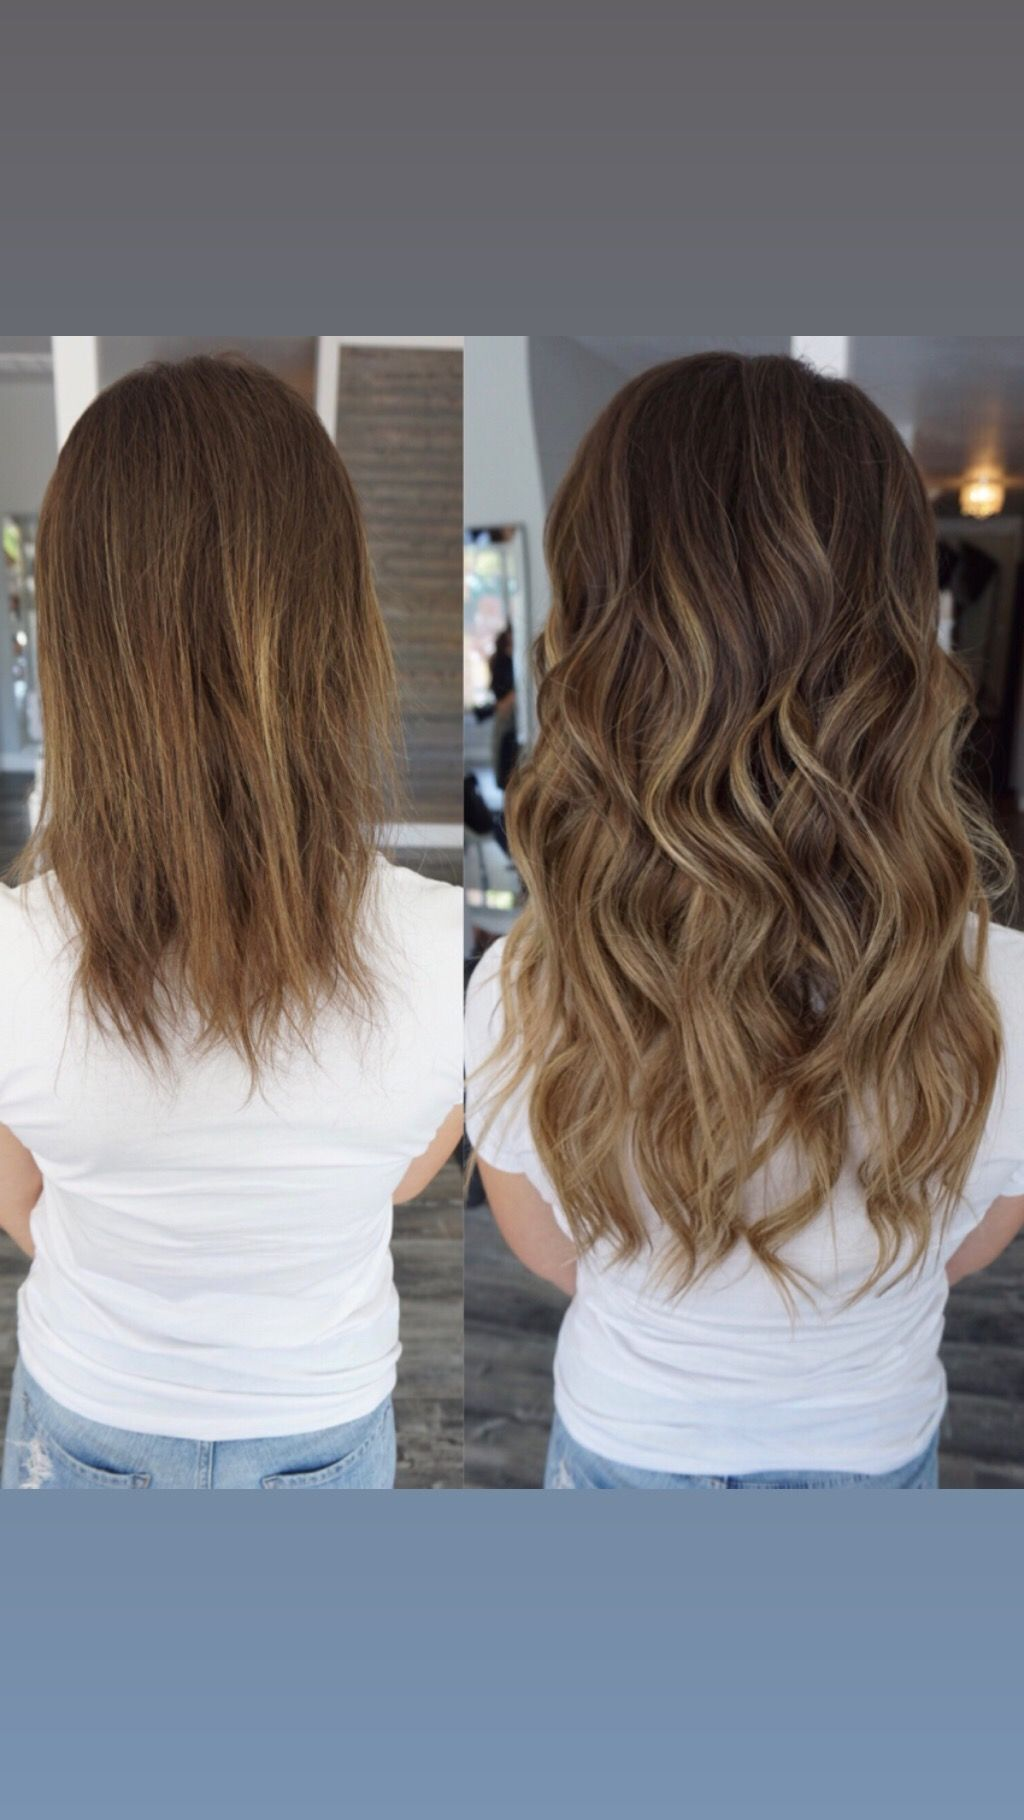 NBR extensions transformation by Amber Patterson Nbr